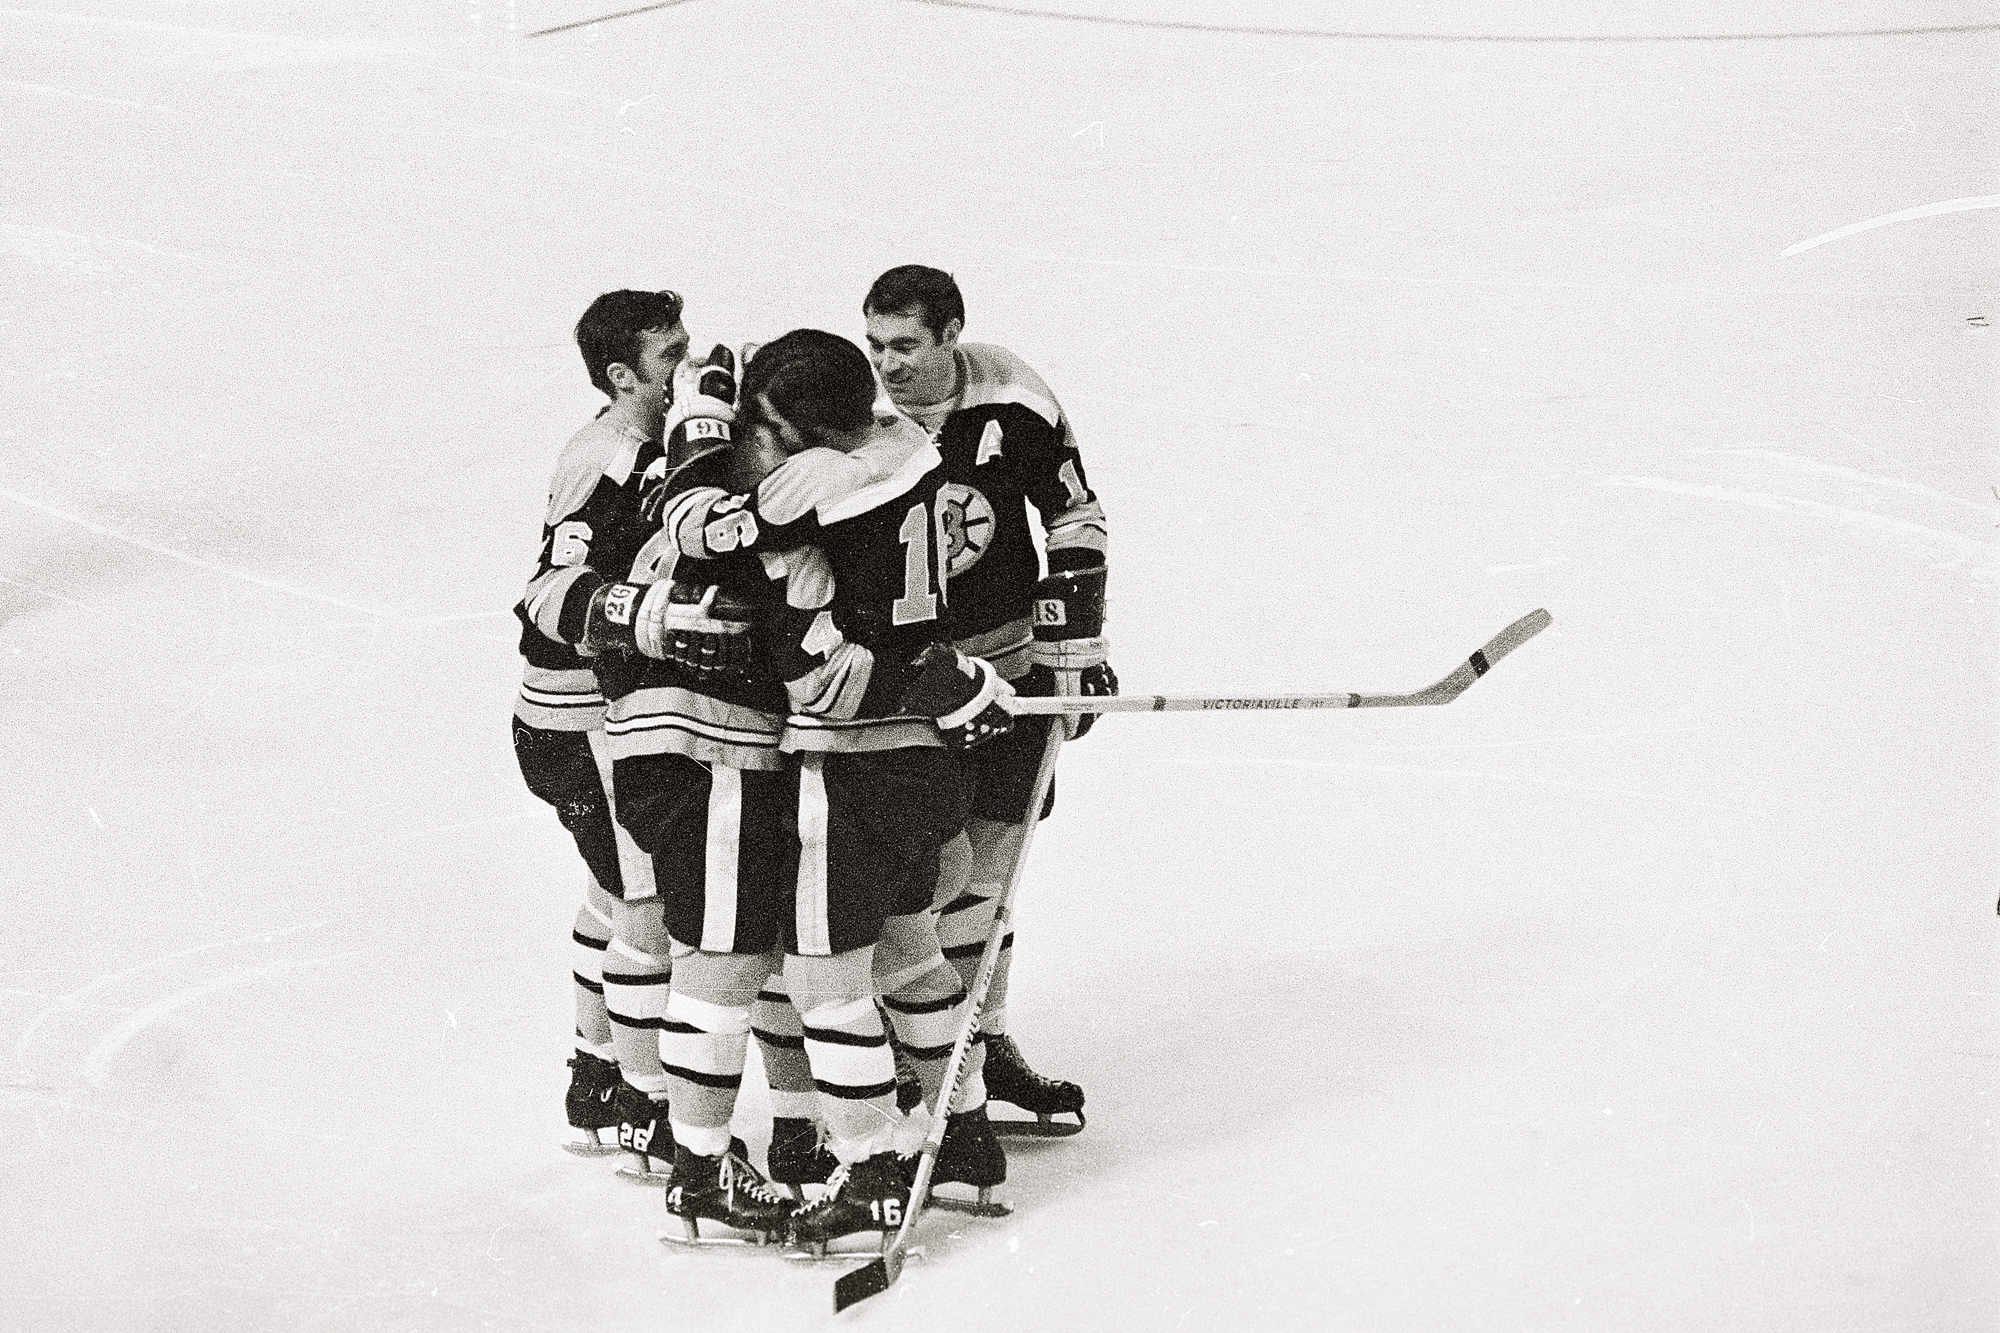 Bruin's Bobby Orr (4) is embraced by teammates Don Awrey (26), Derek Sanderson, (16), and Ed Westfall, (18), after Orr became the first defense man in NHL history to score 100 points on a goal during the 2nd period of the game on March 15th. Orr boosted his total to a league leading 101, as he scored two goals and two assists. The game ended in a 5-5 tie.